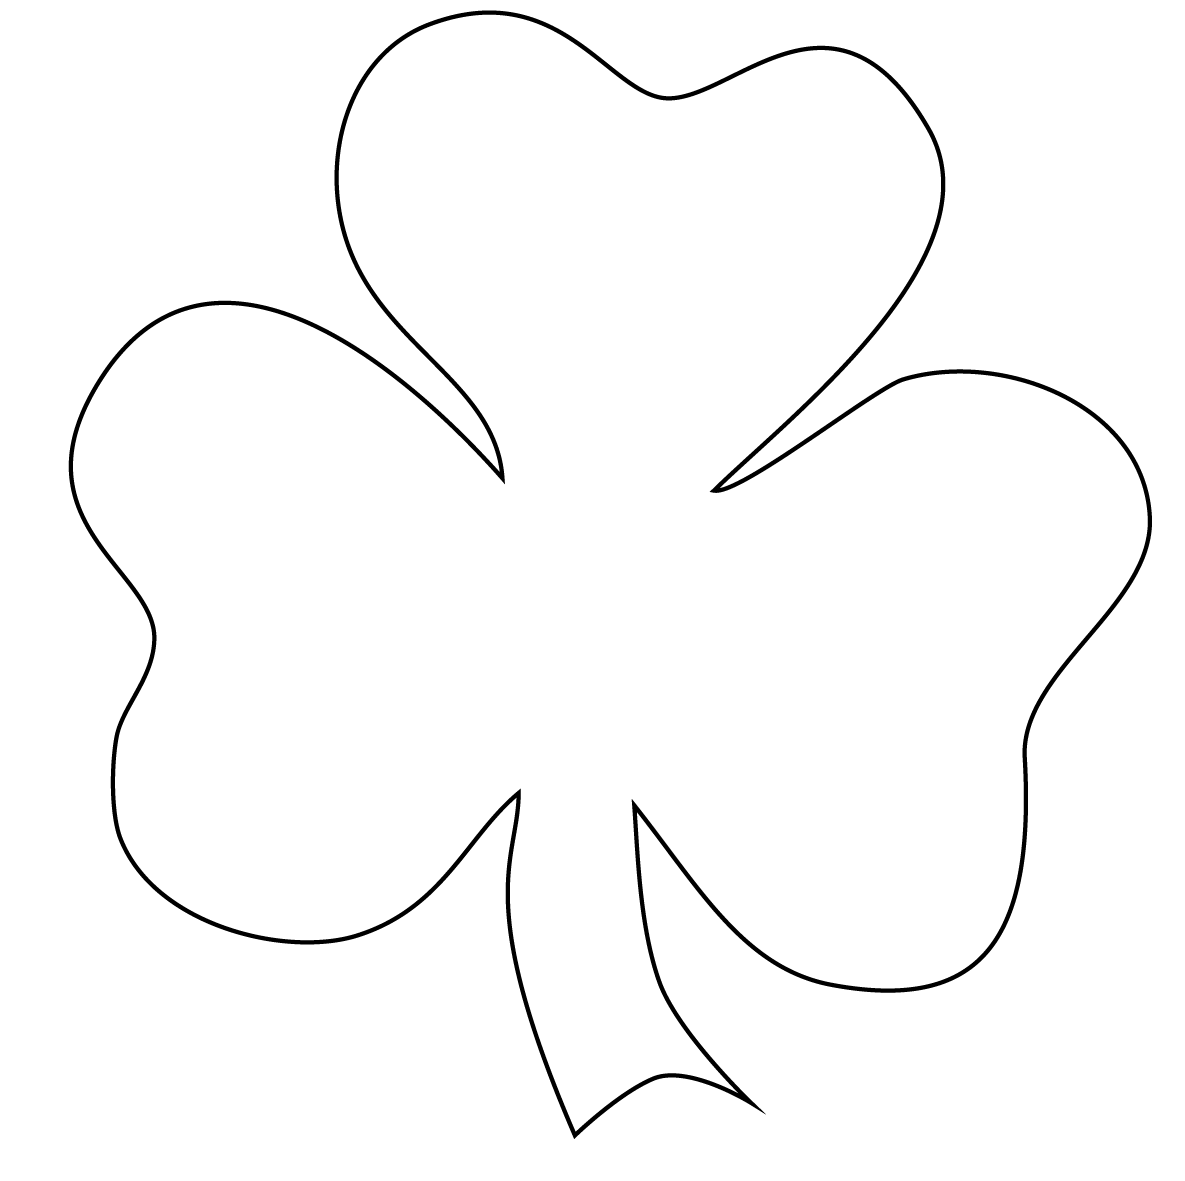 vector royalty free download Shamrock clipart black and white. Free clip art panda